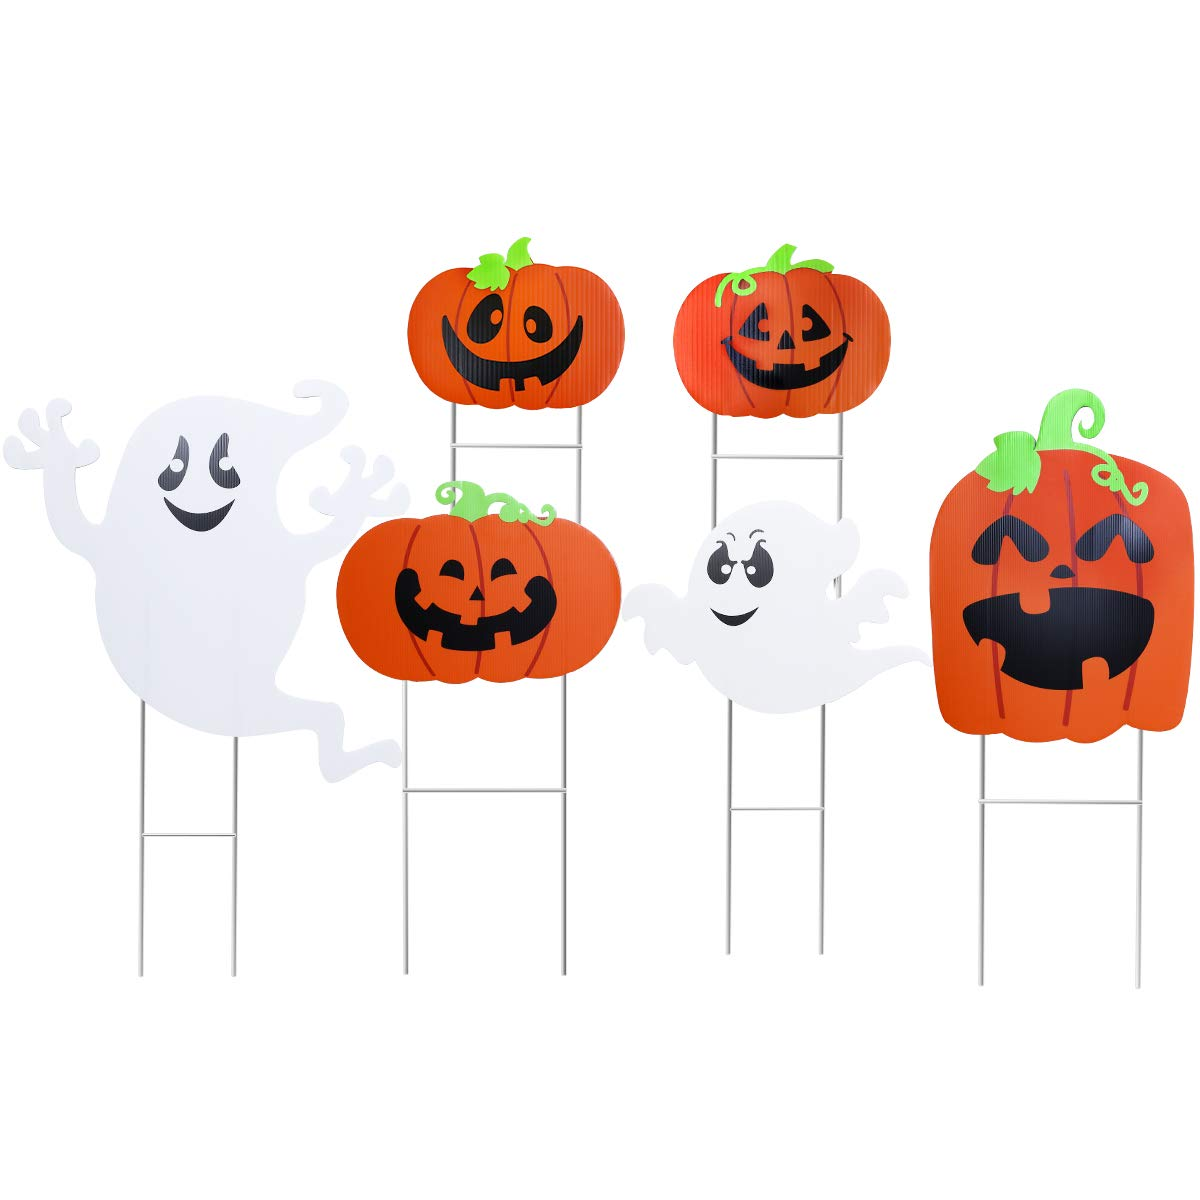 Amosfun Halloween Yard Sign Cute Pumpkin Ghost Decoration Lawn Decoration Signs for Outdoor Halloween Yard Decorations, 6 Pack